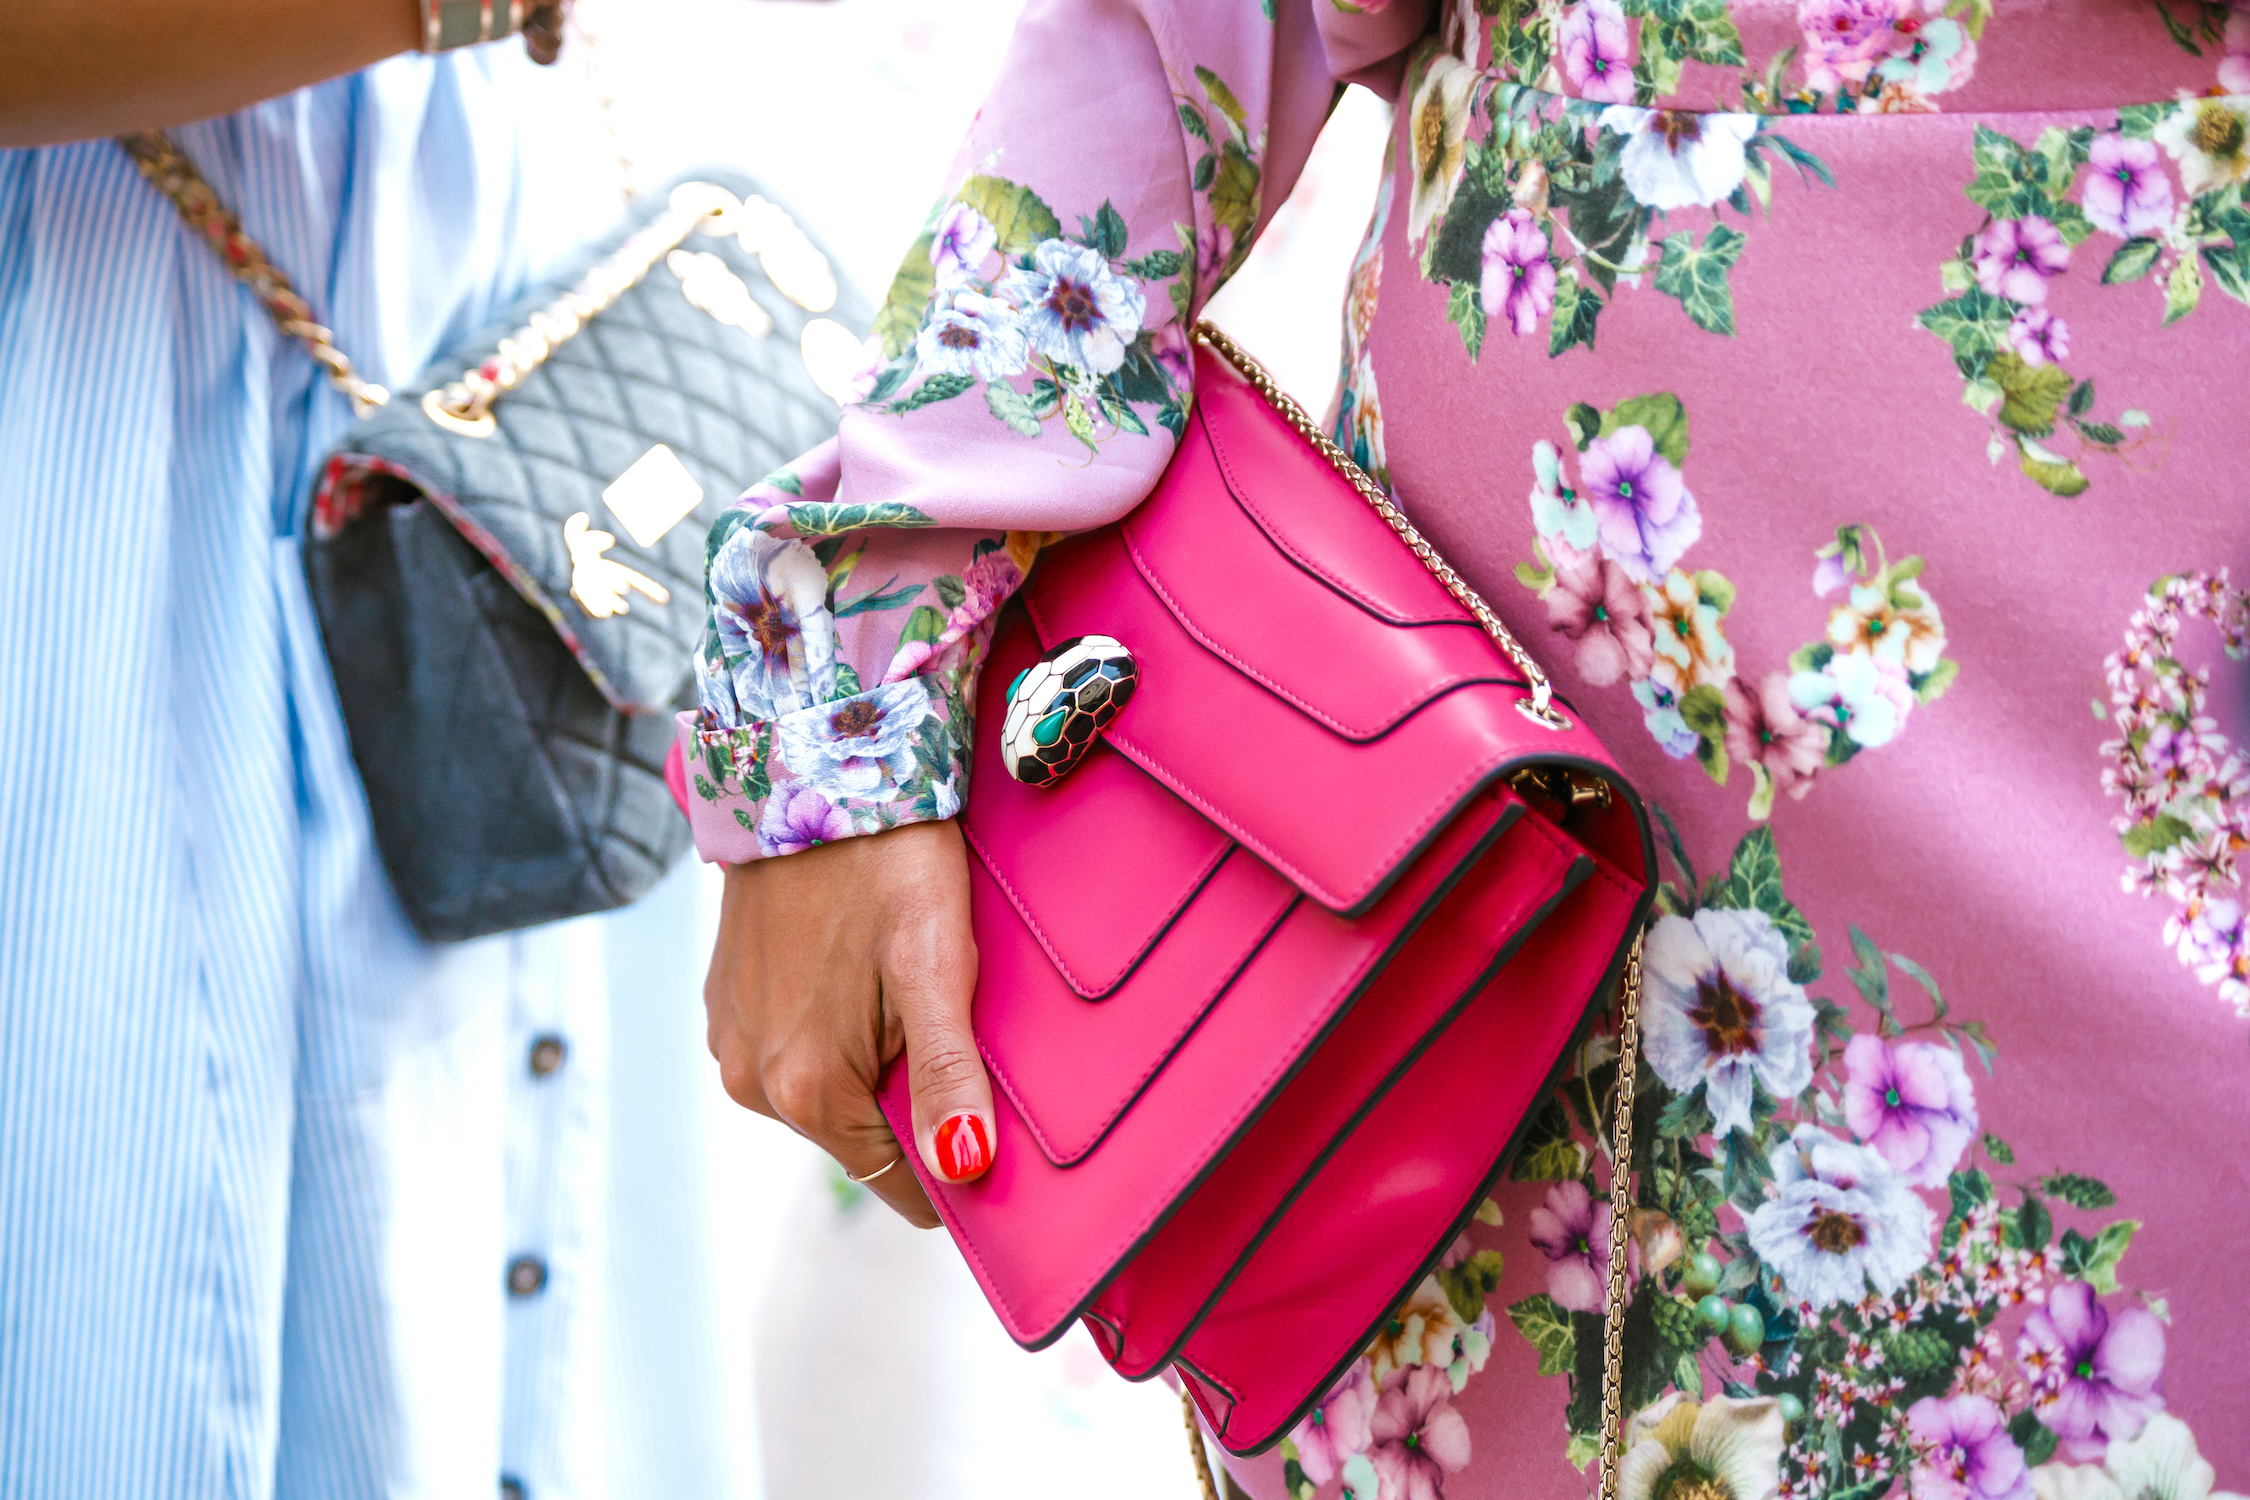 Rent A Designer Bag From These 9 Brands